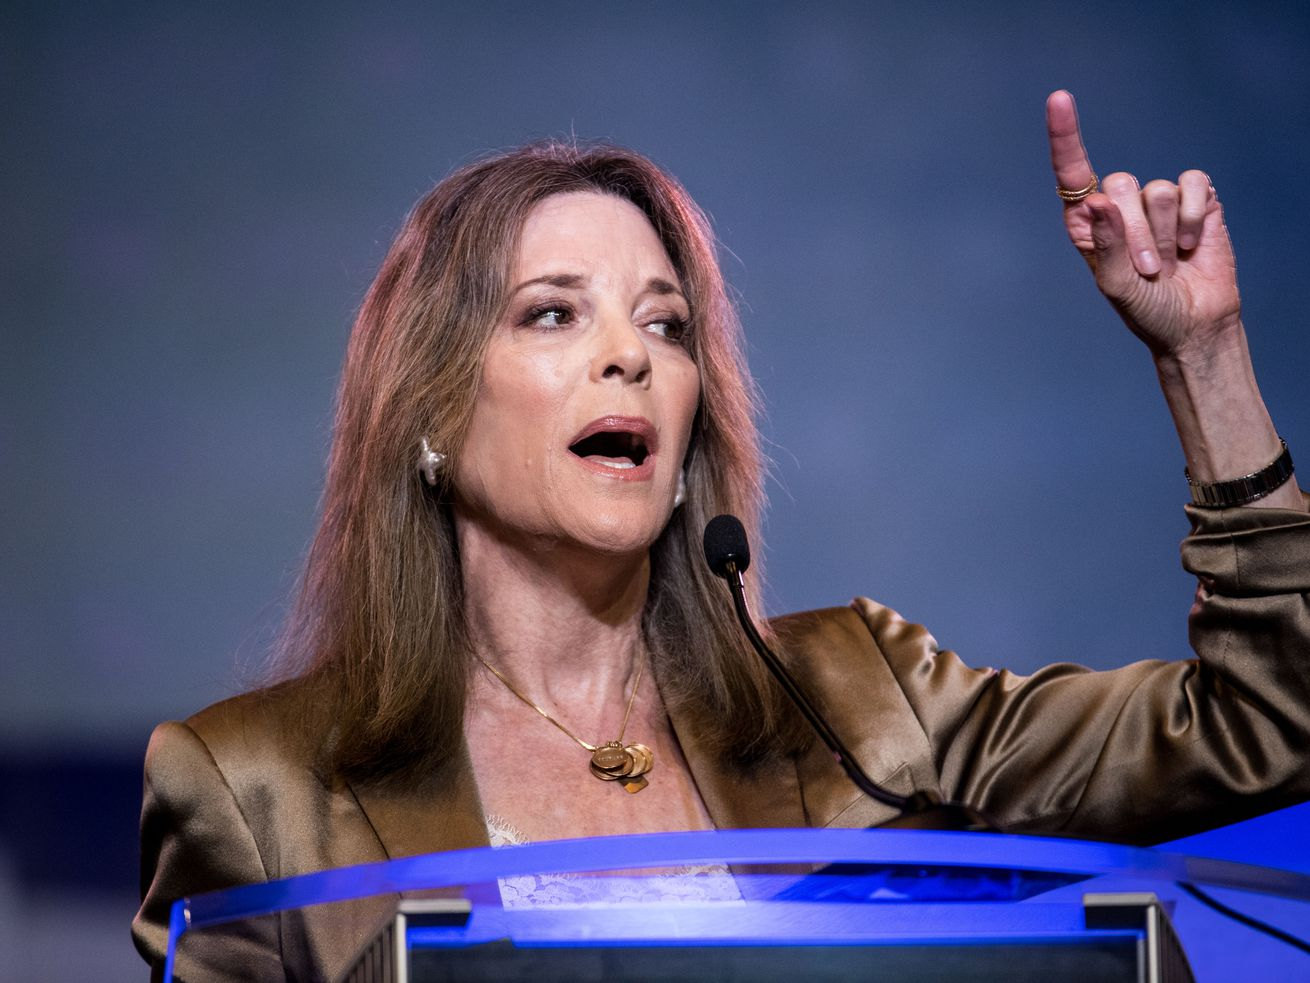 Marianne Williamson's supporters think she would make a great inspirer-in-chief, if only American voters would listen.